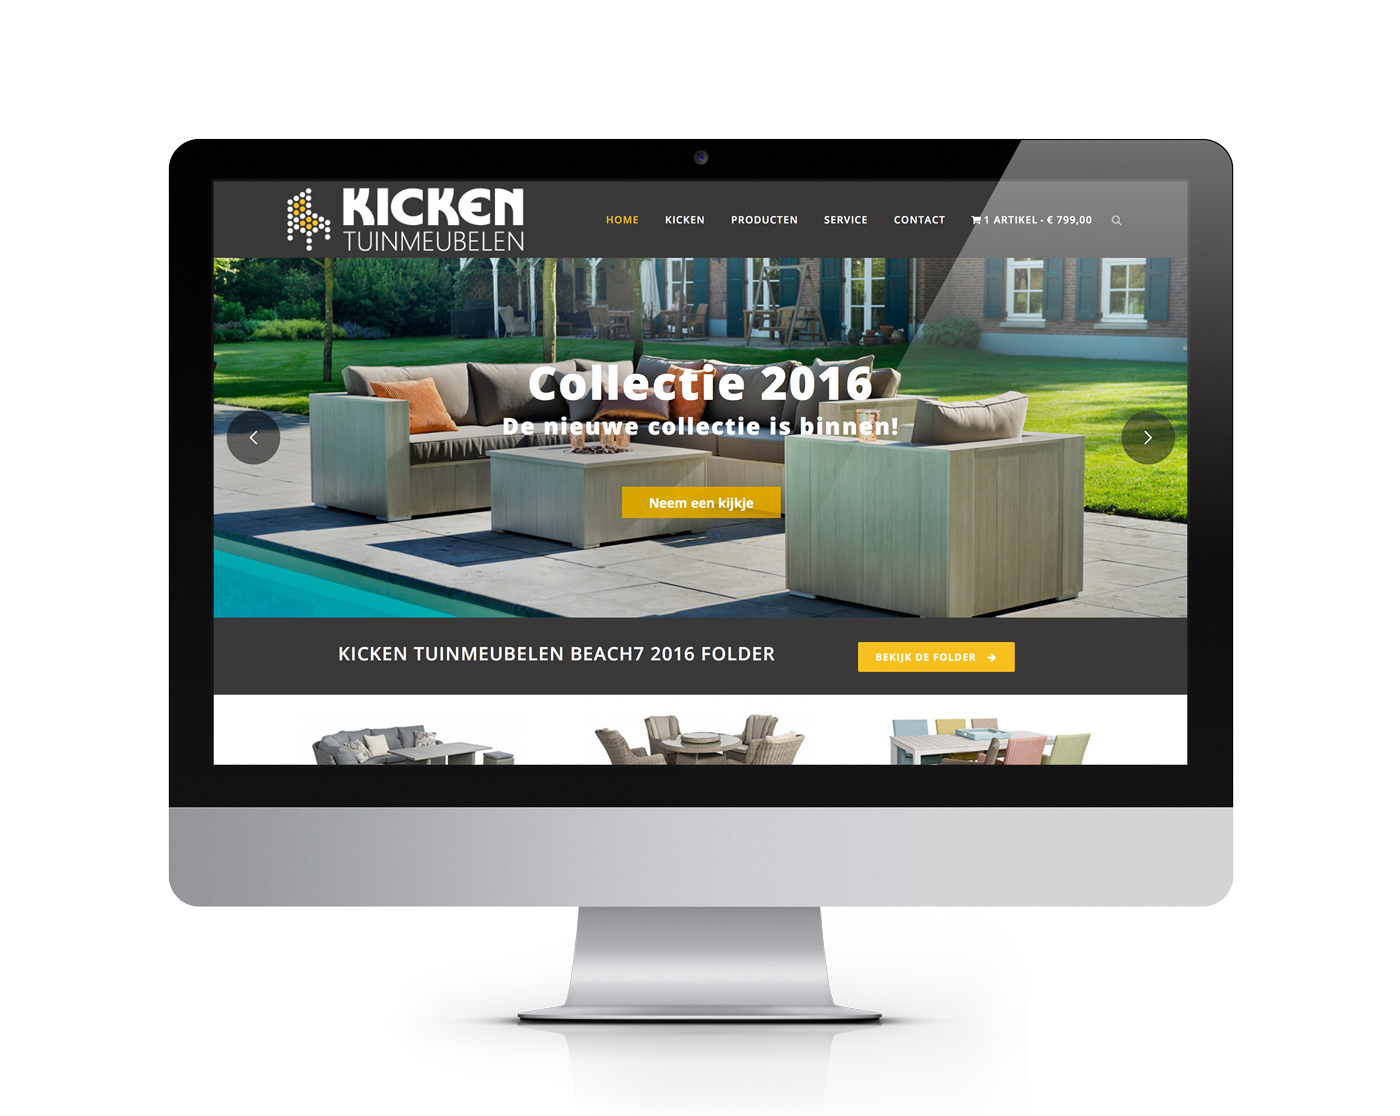 Kicken Tuinmeubelen website